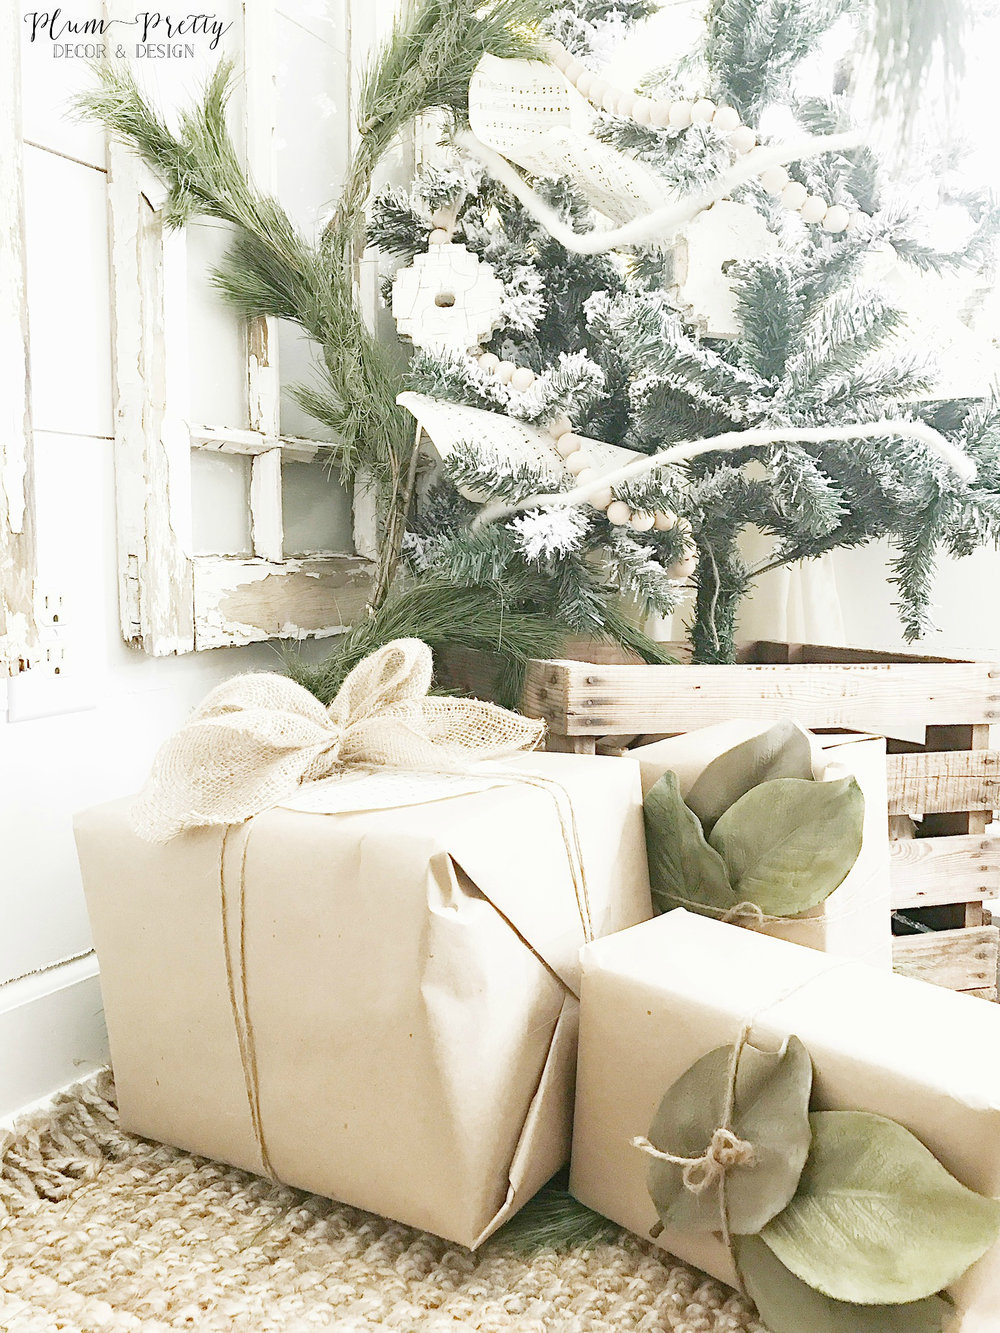 Neutral Christmas Decor in a Farmhouse Style Office- Plum Pretty Decor and Design